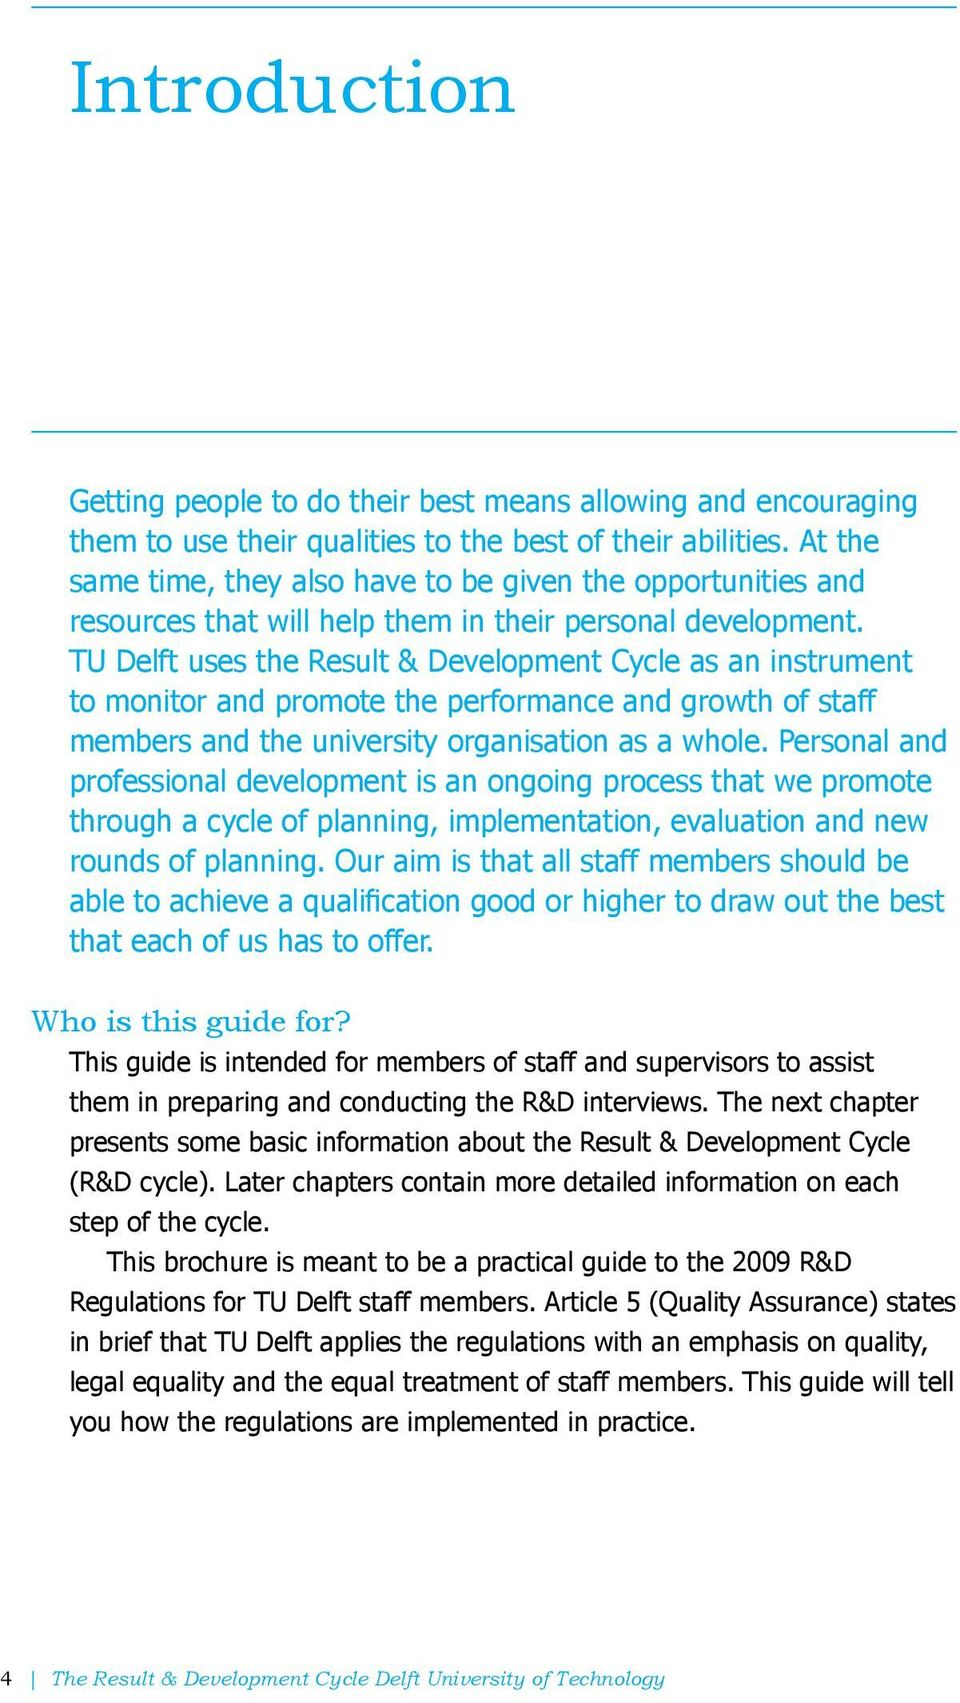 TU Delft uses the Result & Development Cycle as an instrument to monitor and promote the performance and growth of staff members and the university organisation as a whole.